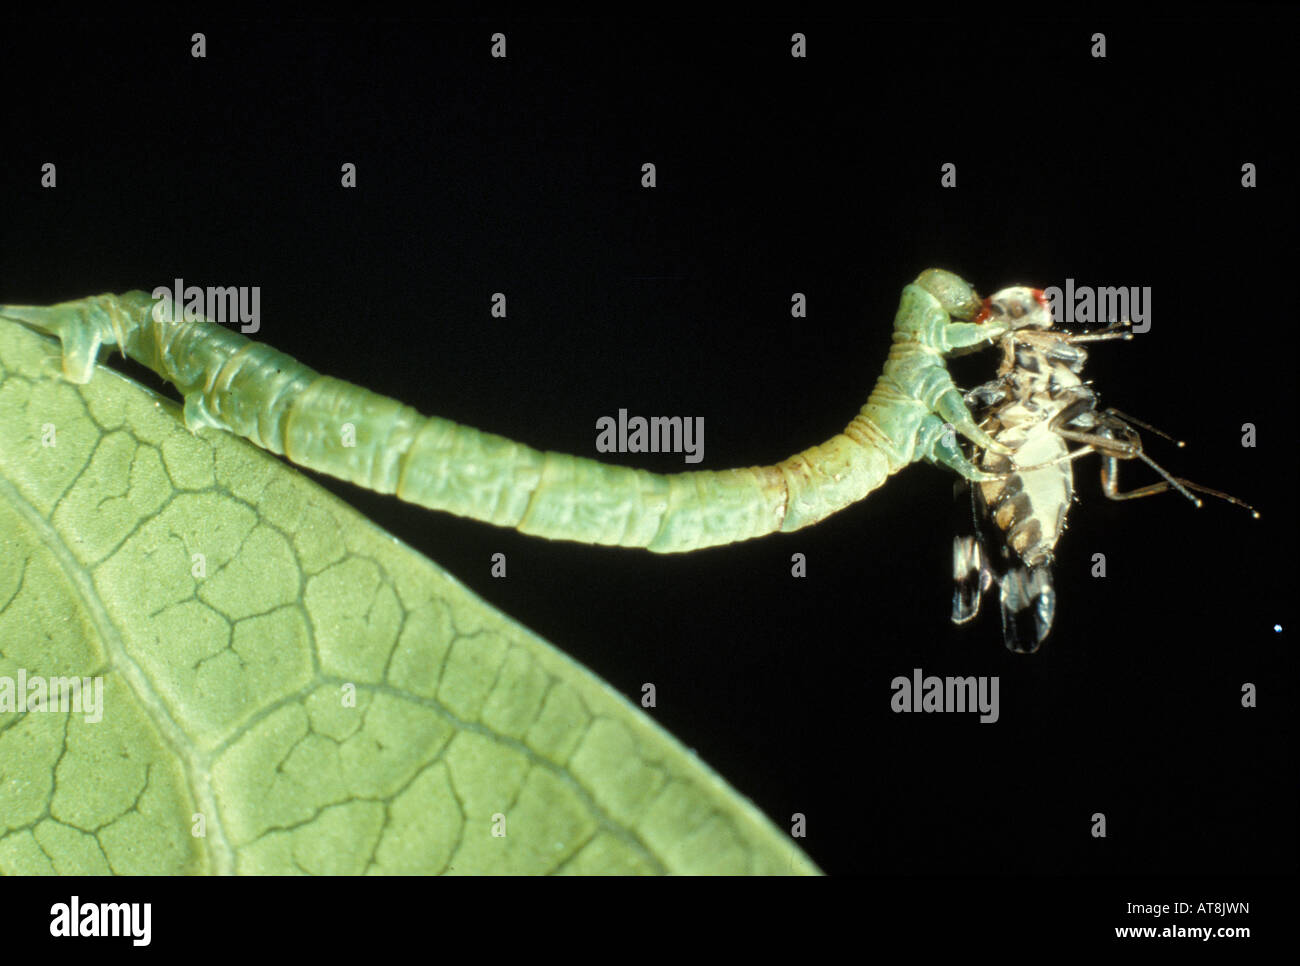 inch worm stock photos u0026 inch worm stock images alamy